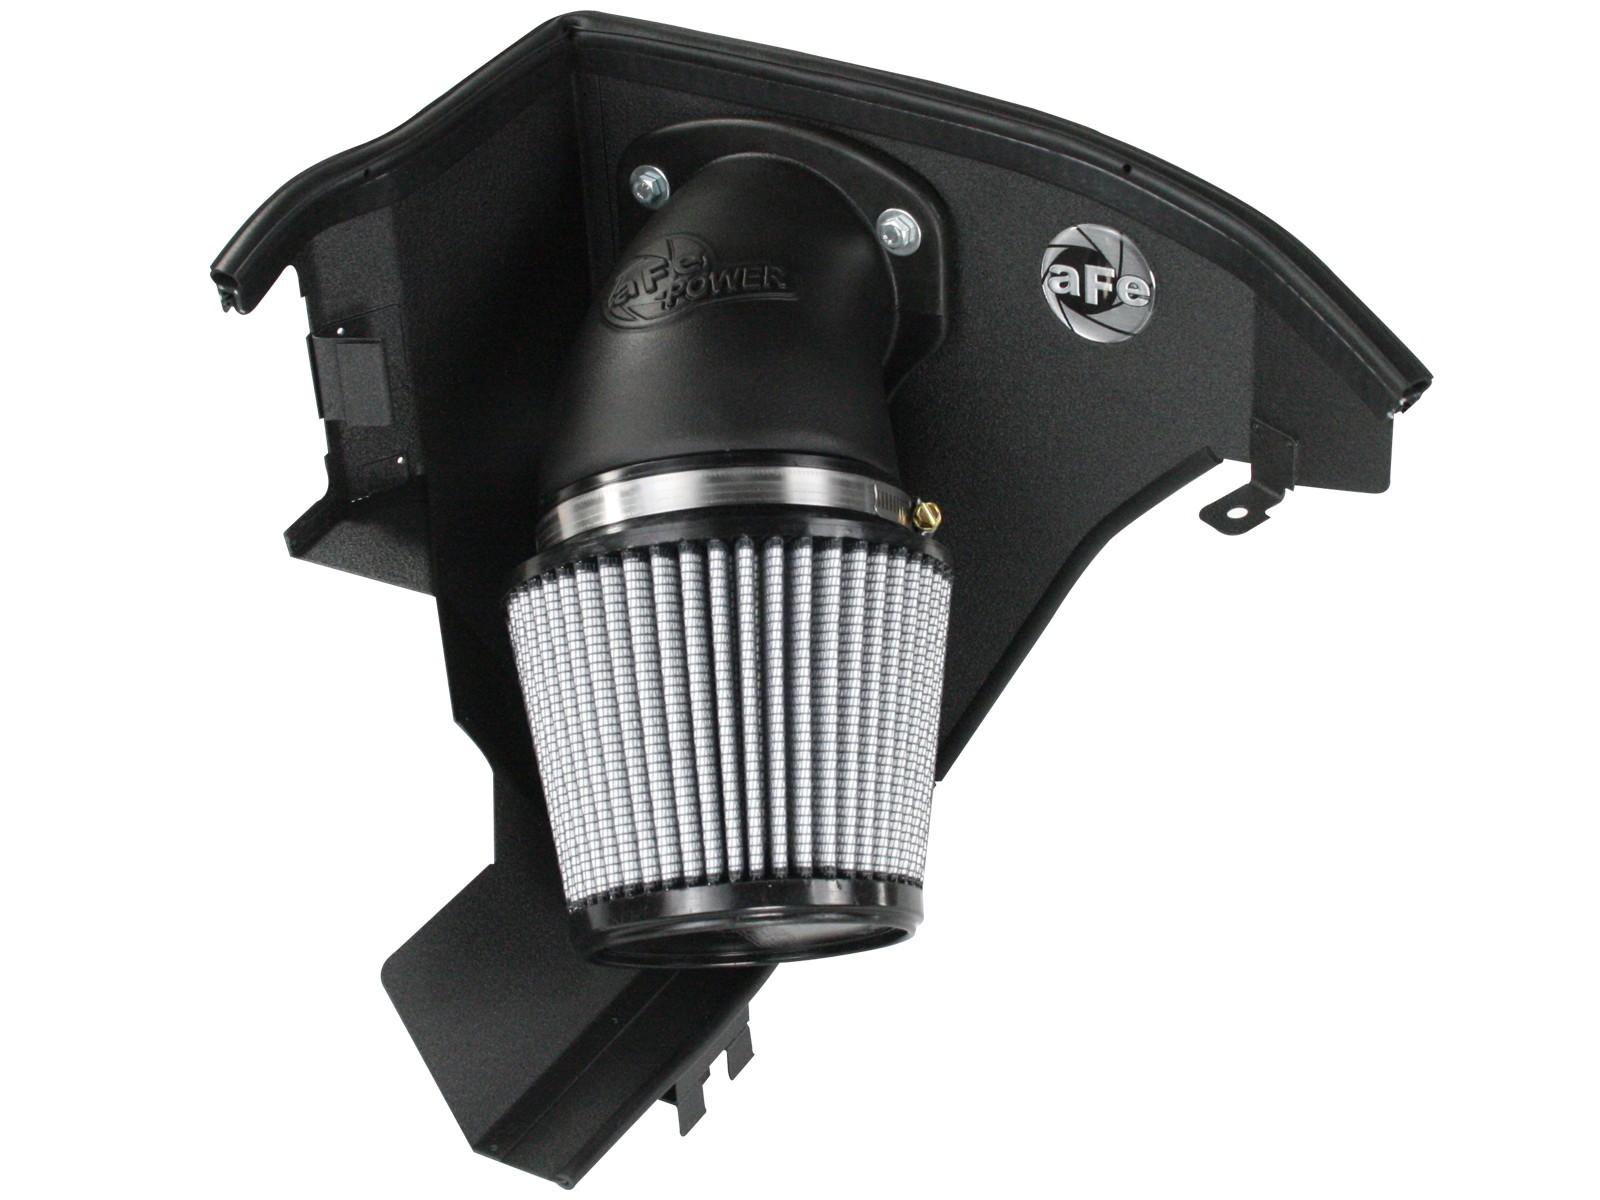 aFe POWER 51-20442 Magnum FORCE Stage-2 Pro DRY S Cold Air Intake System